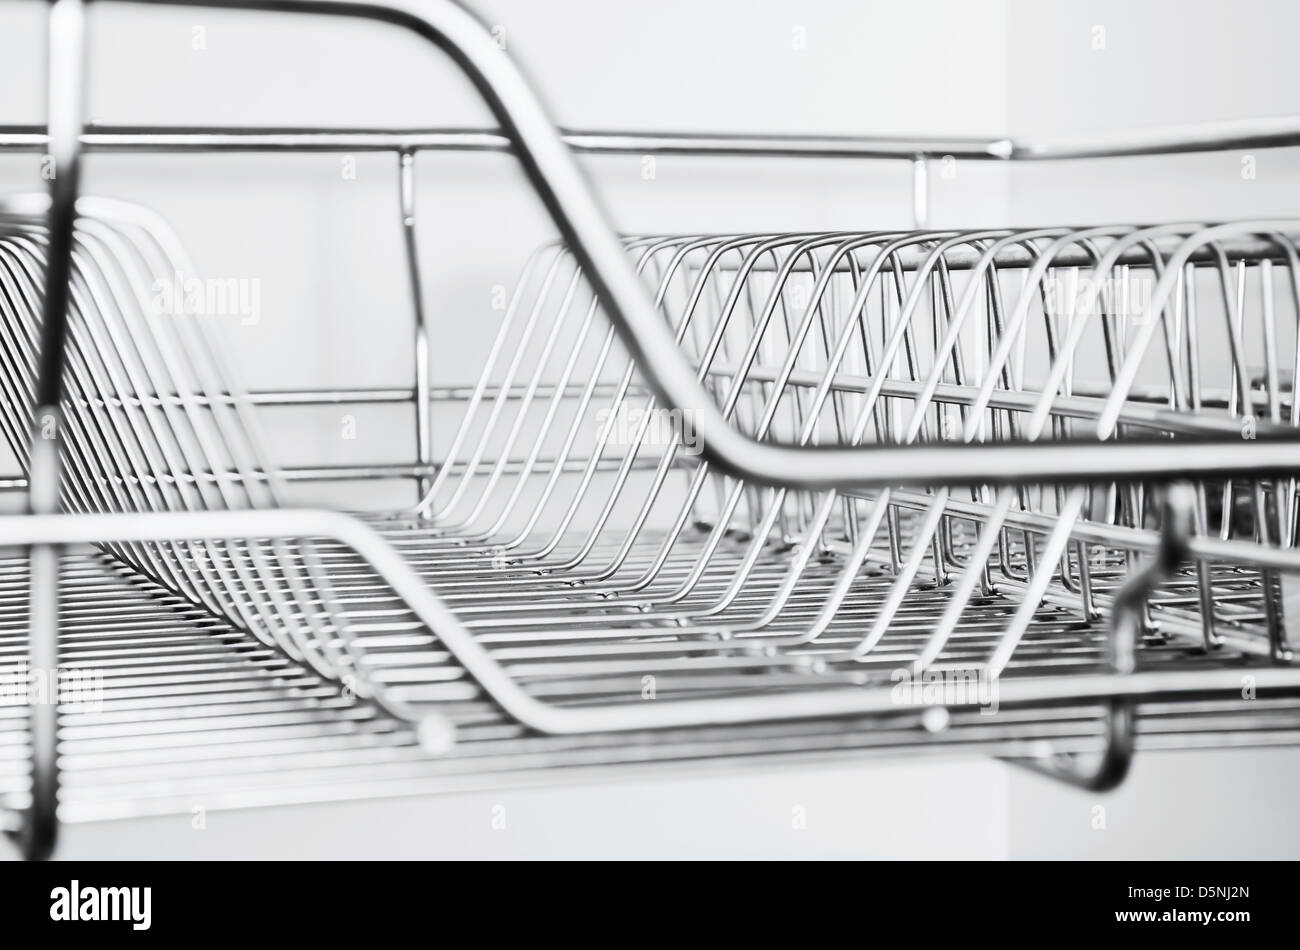 Close Up Of Stainless Steel Dish Rack Inside Kitchen Cabinet